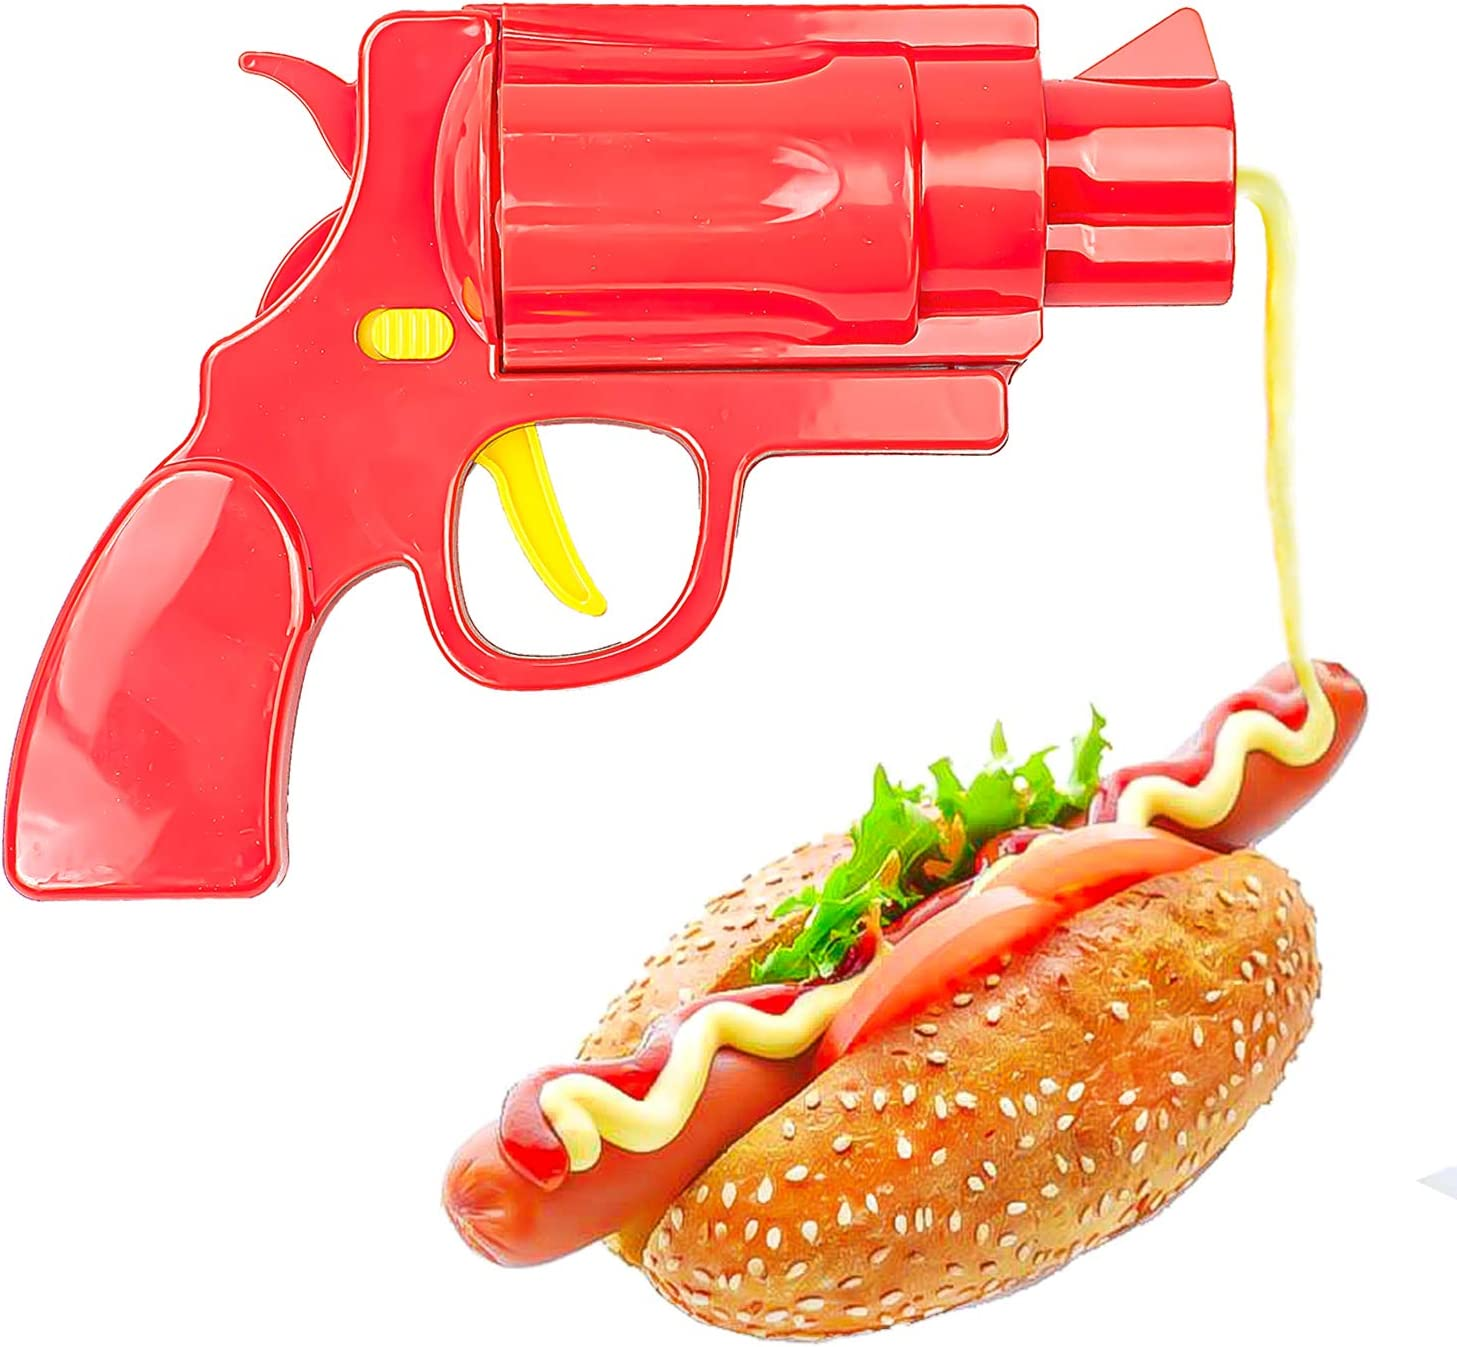 Novelty Condiment Shooter Dispenser - Plastic Ketchup Mustard BBQ Hot Sauce Container Squeeze Gun Shaped Bottle Funny